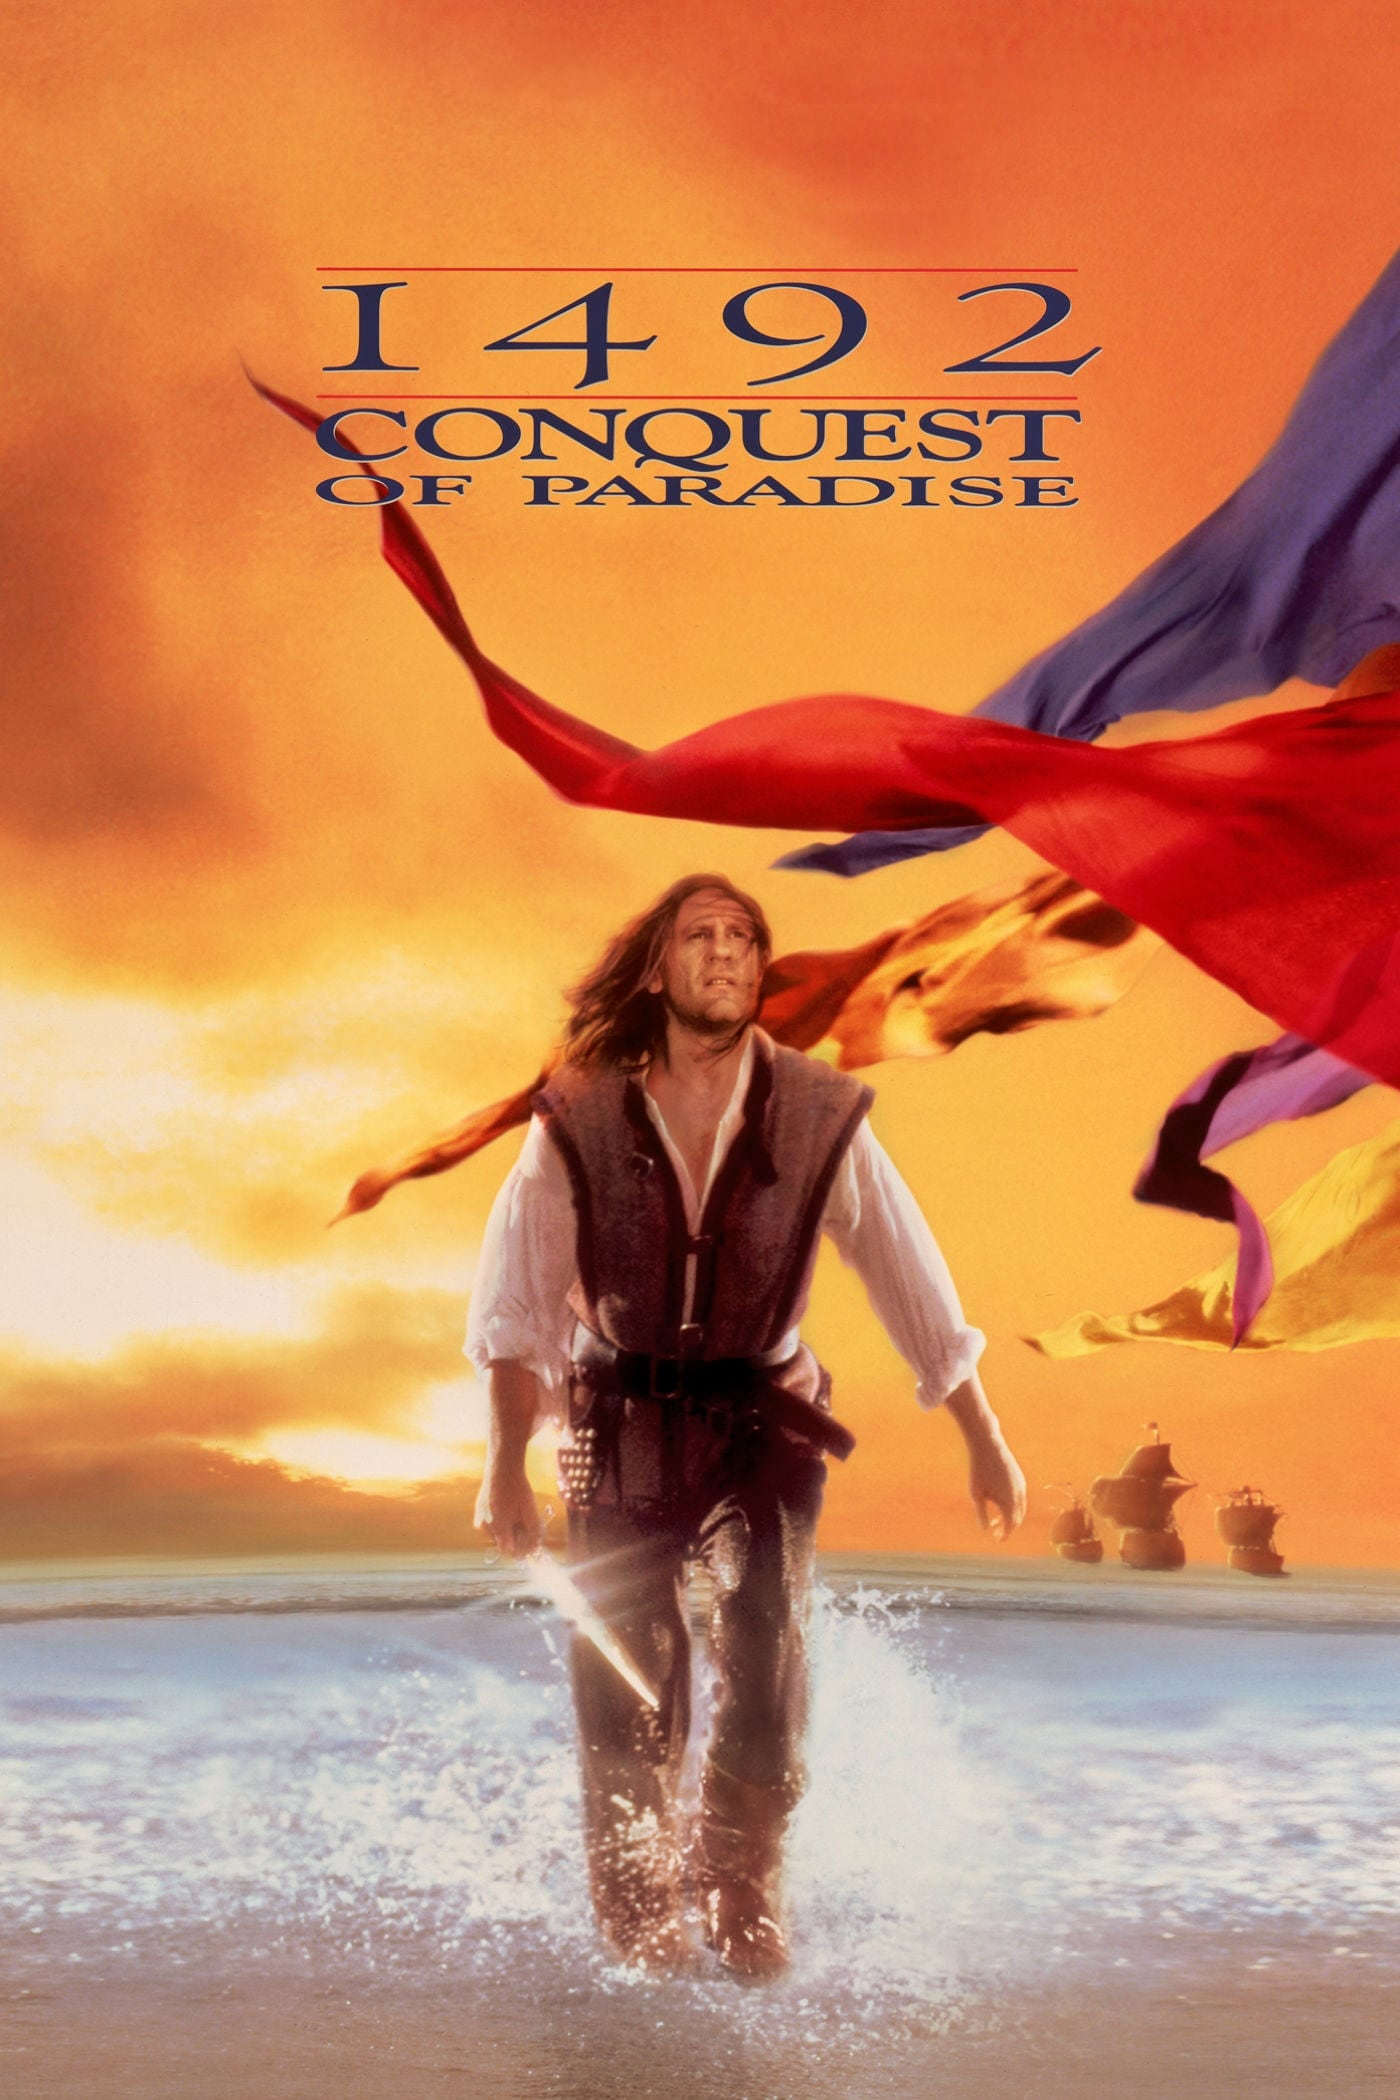 conquest of paradise film